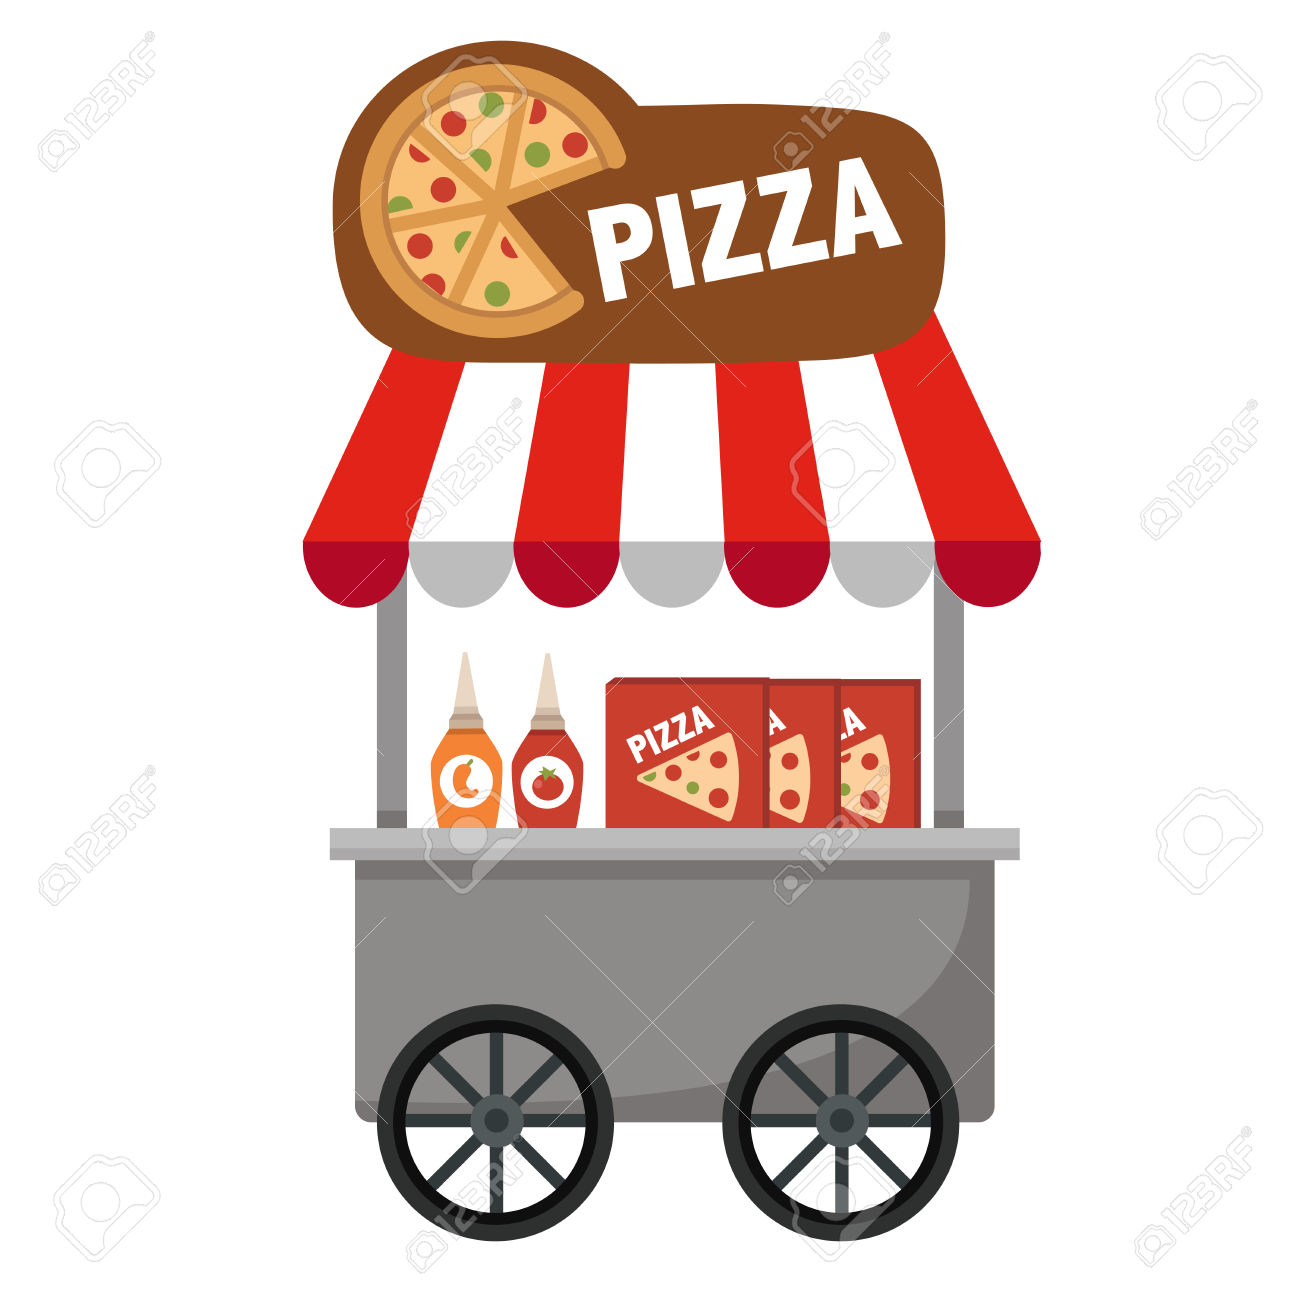 Cart Stall And Pizza Vector Illustration On White Background.